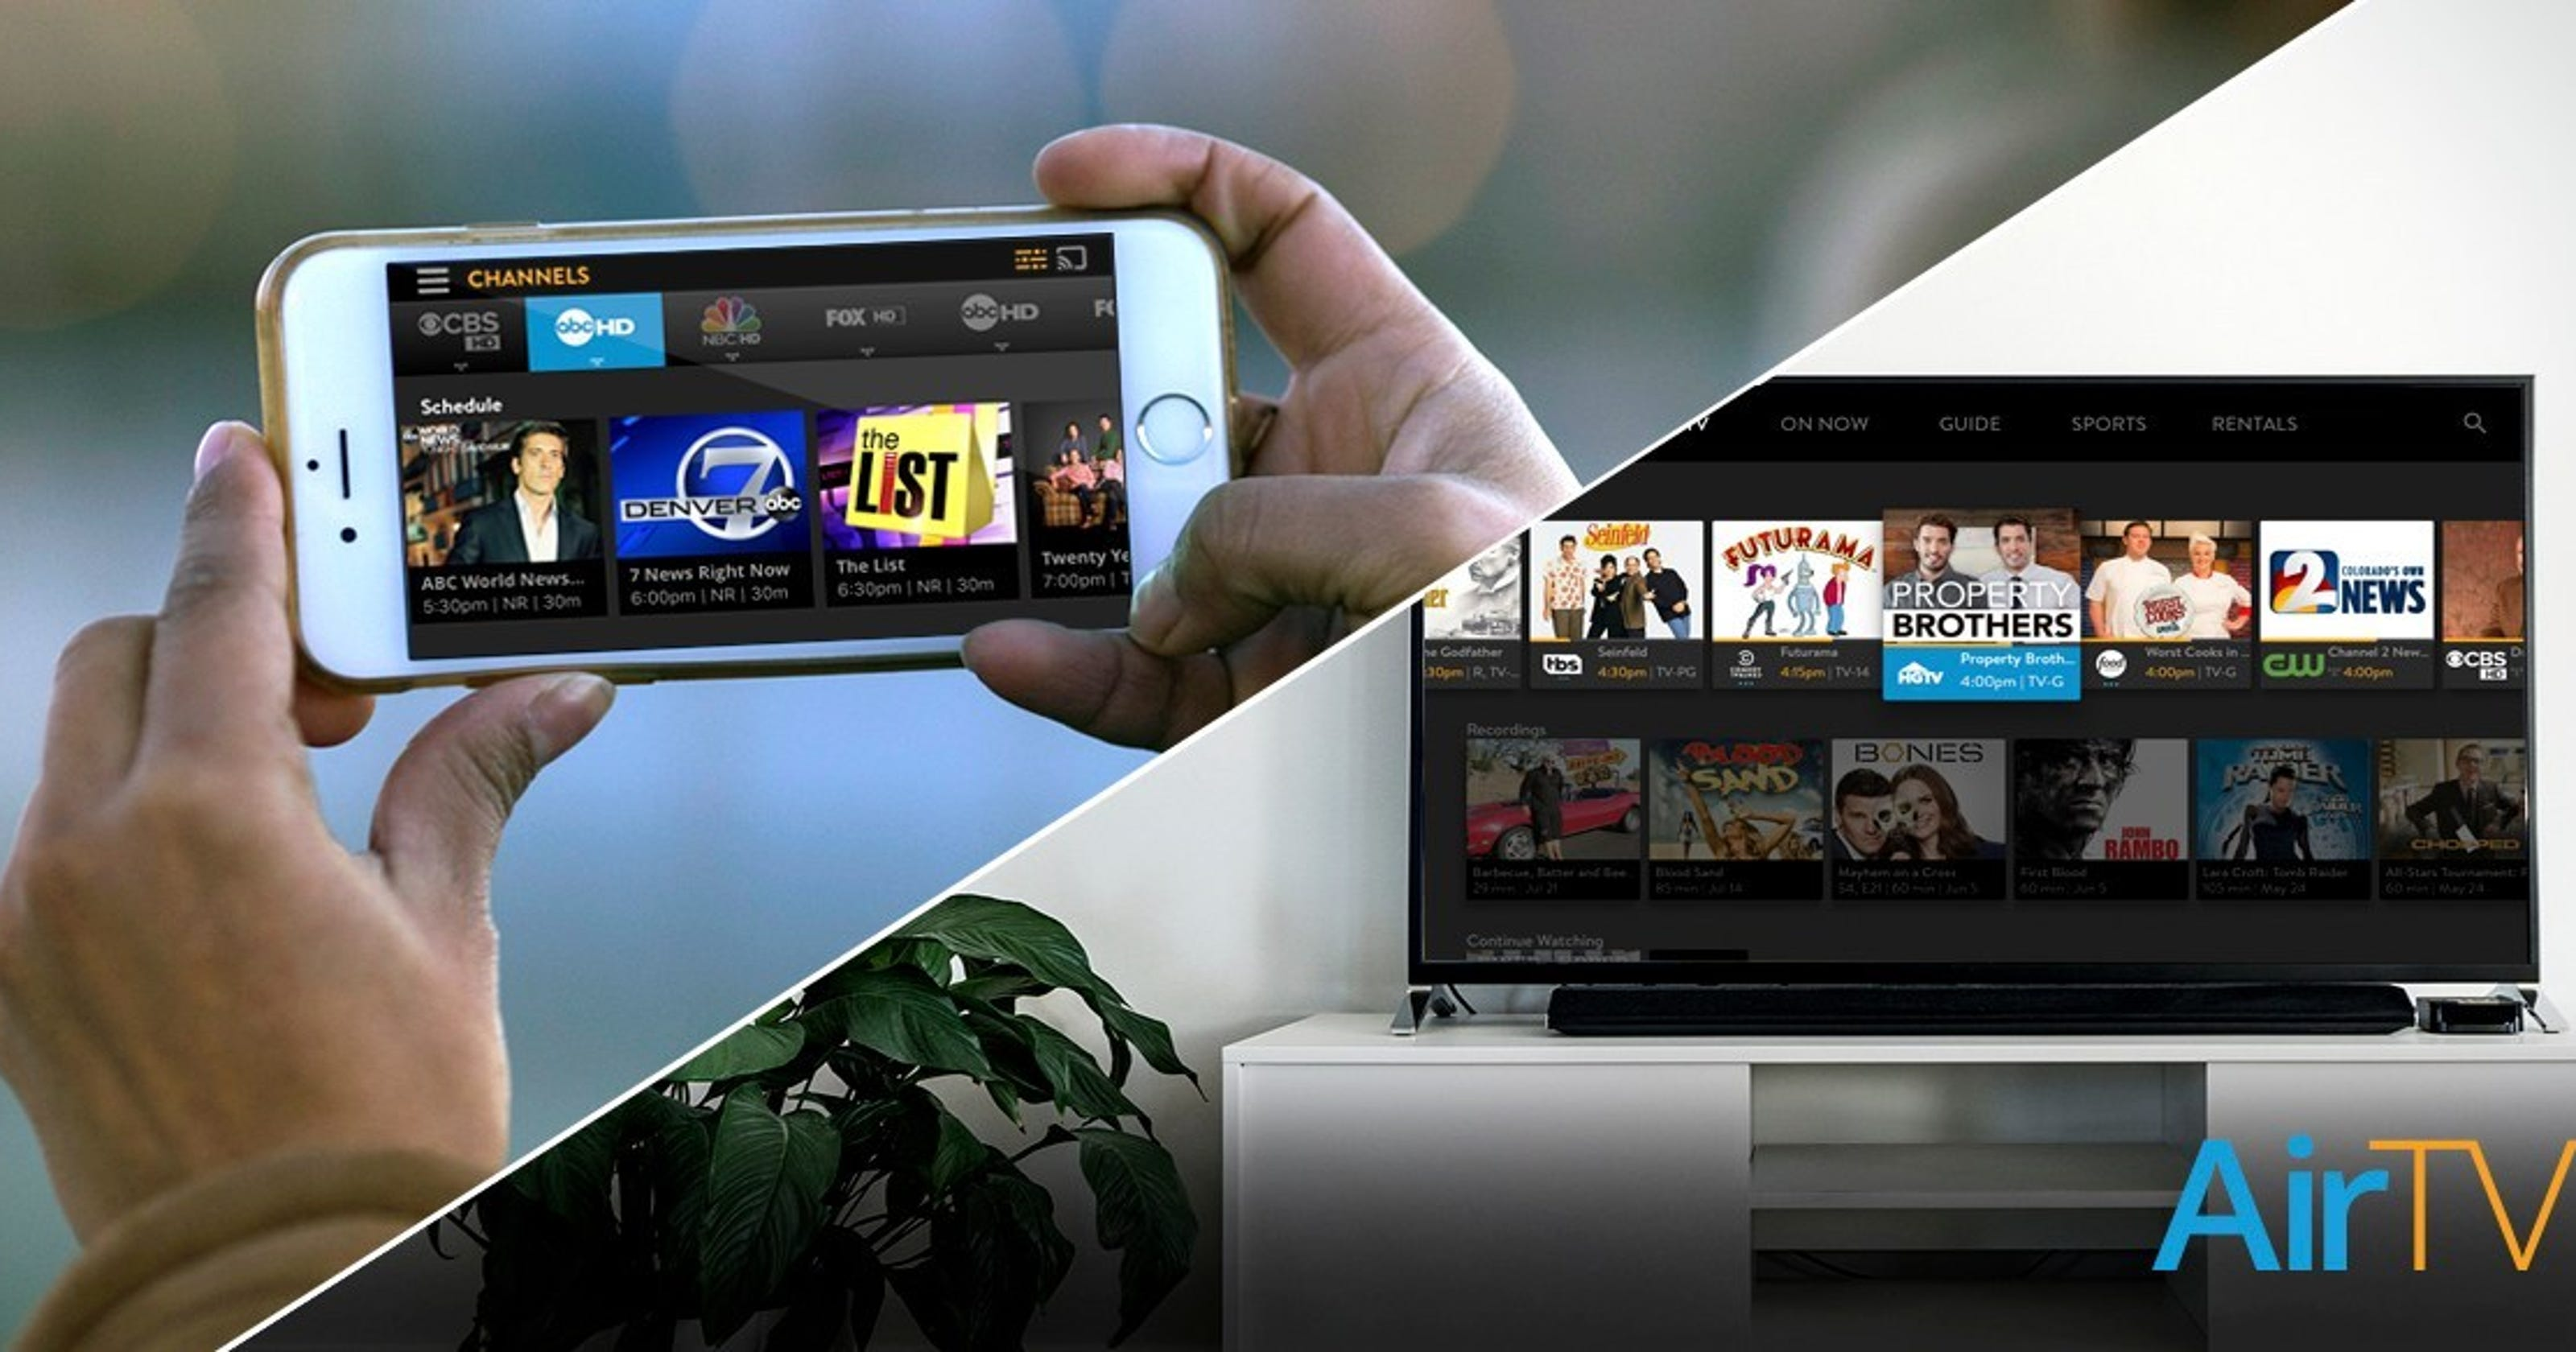 AirTV lets cord cutters stream free local TV channels at